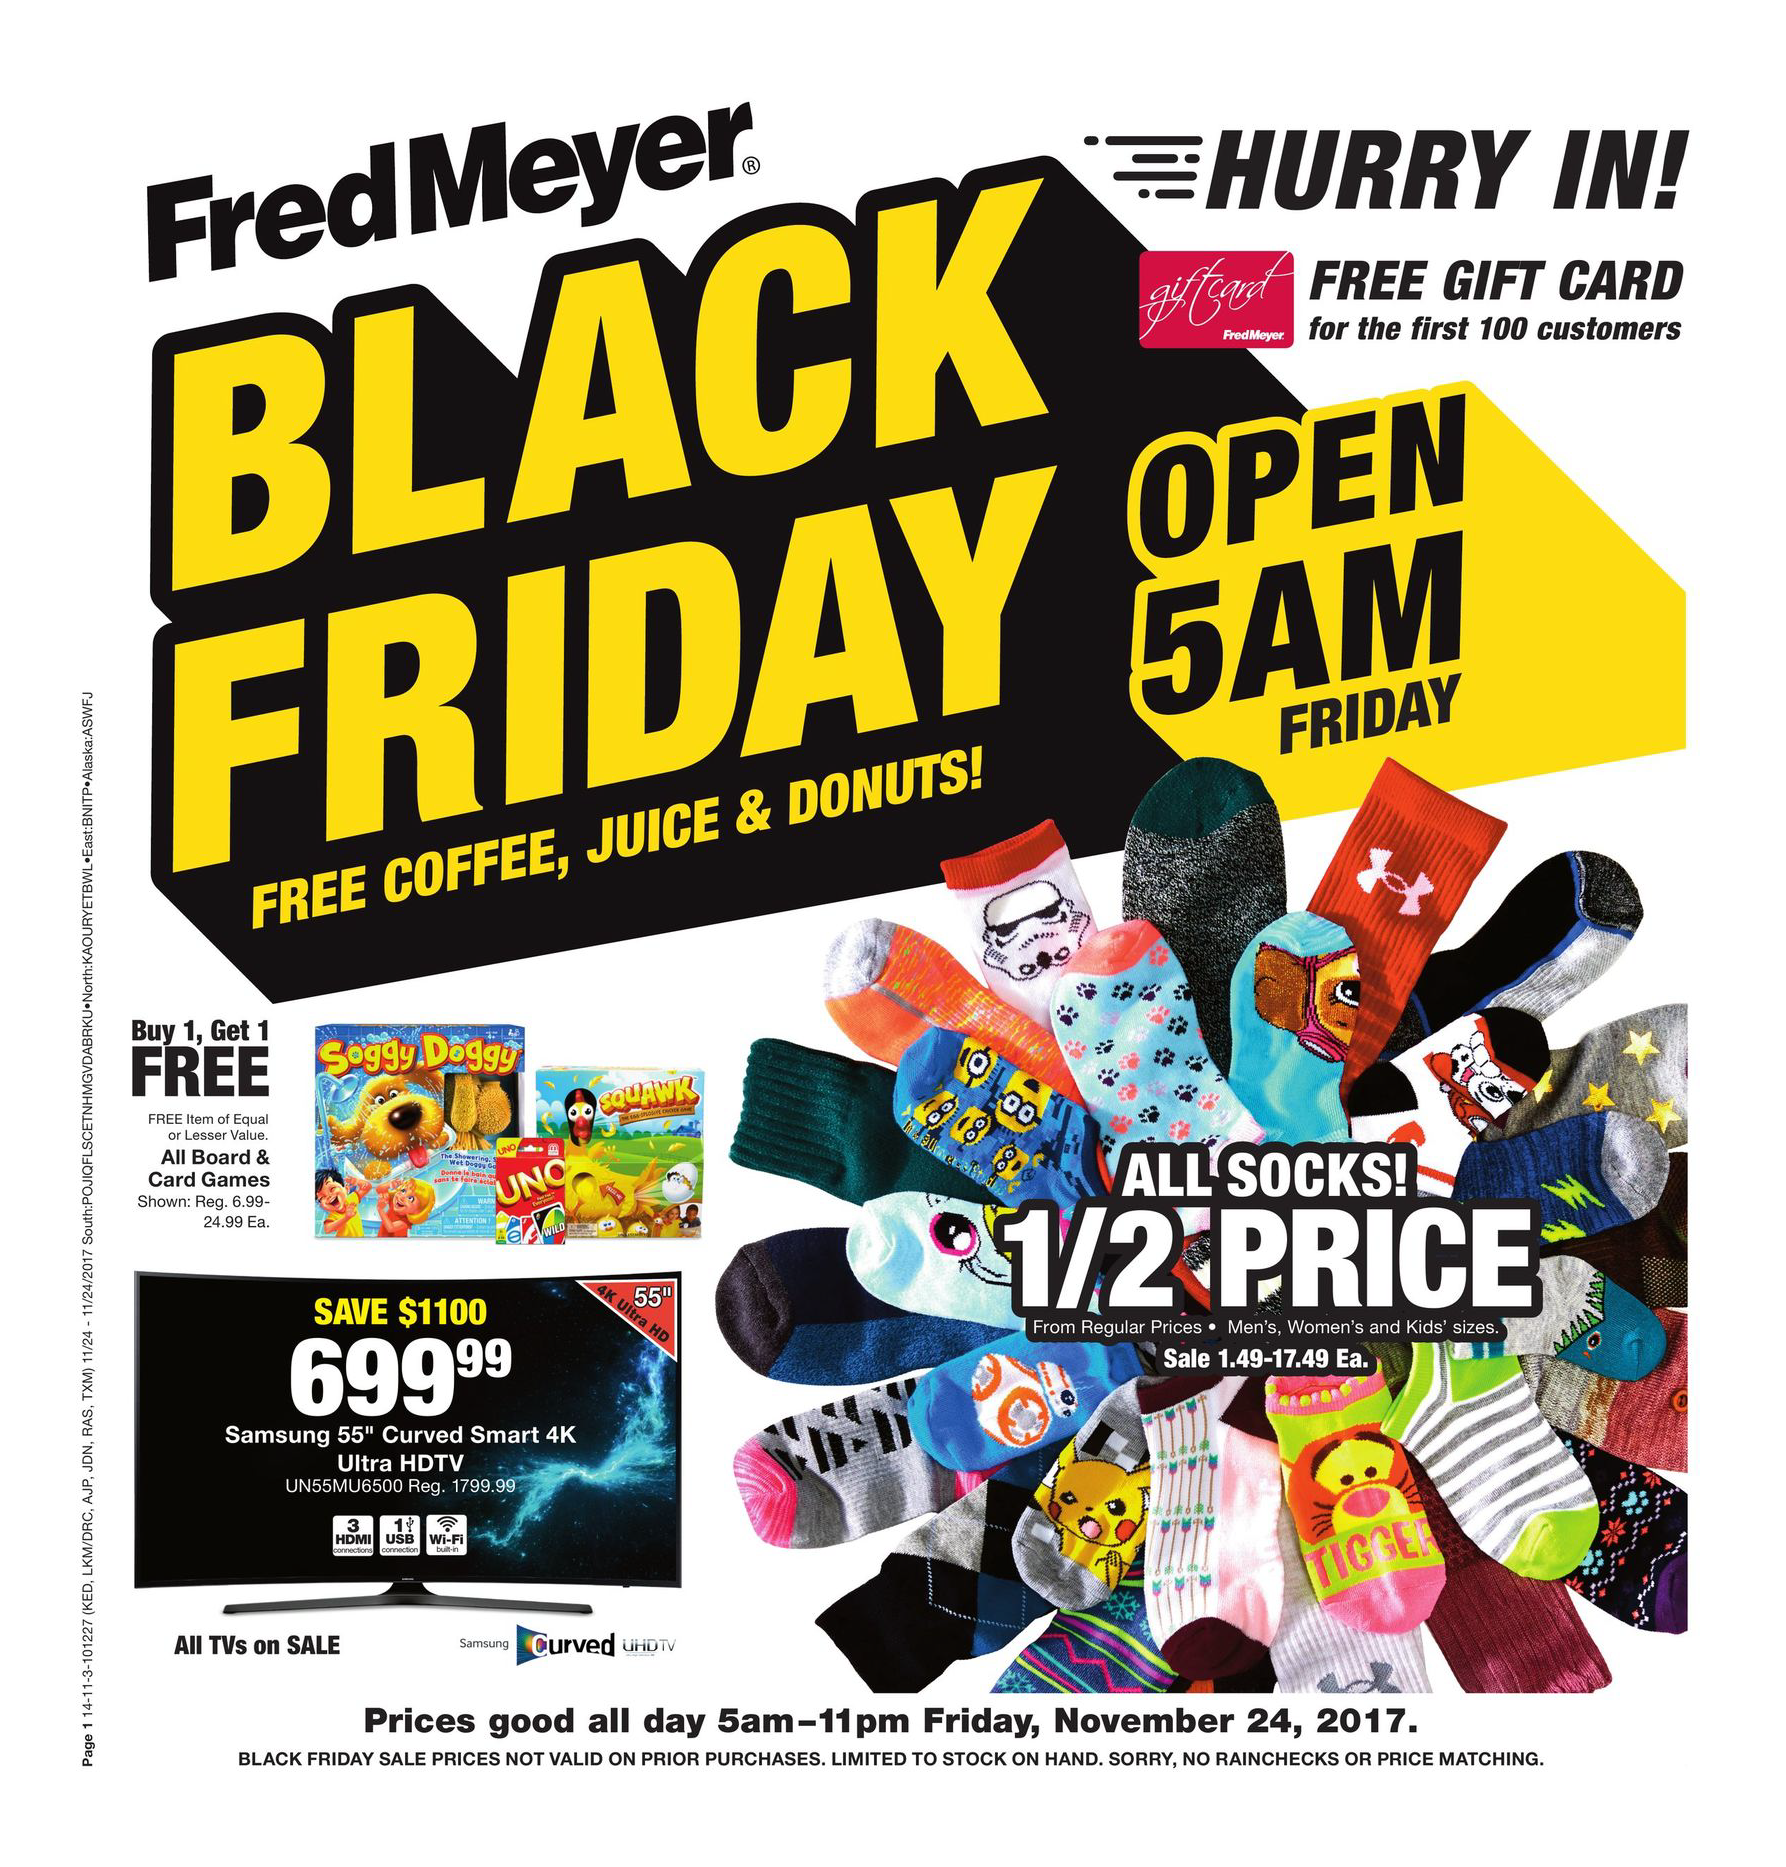 Complete coverage of BestBuy Black Friday 2018 Ads amp BestBuy Black Friday deals info